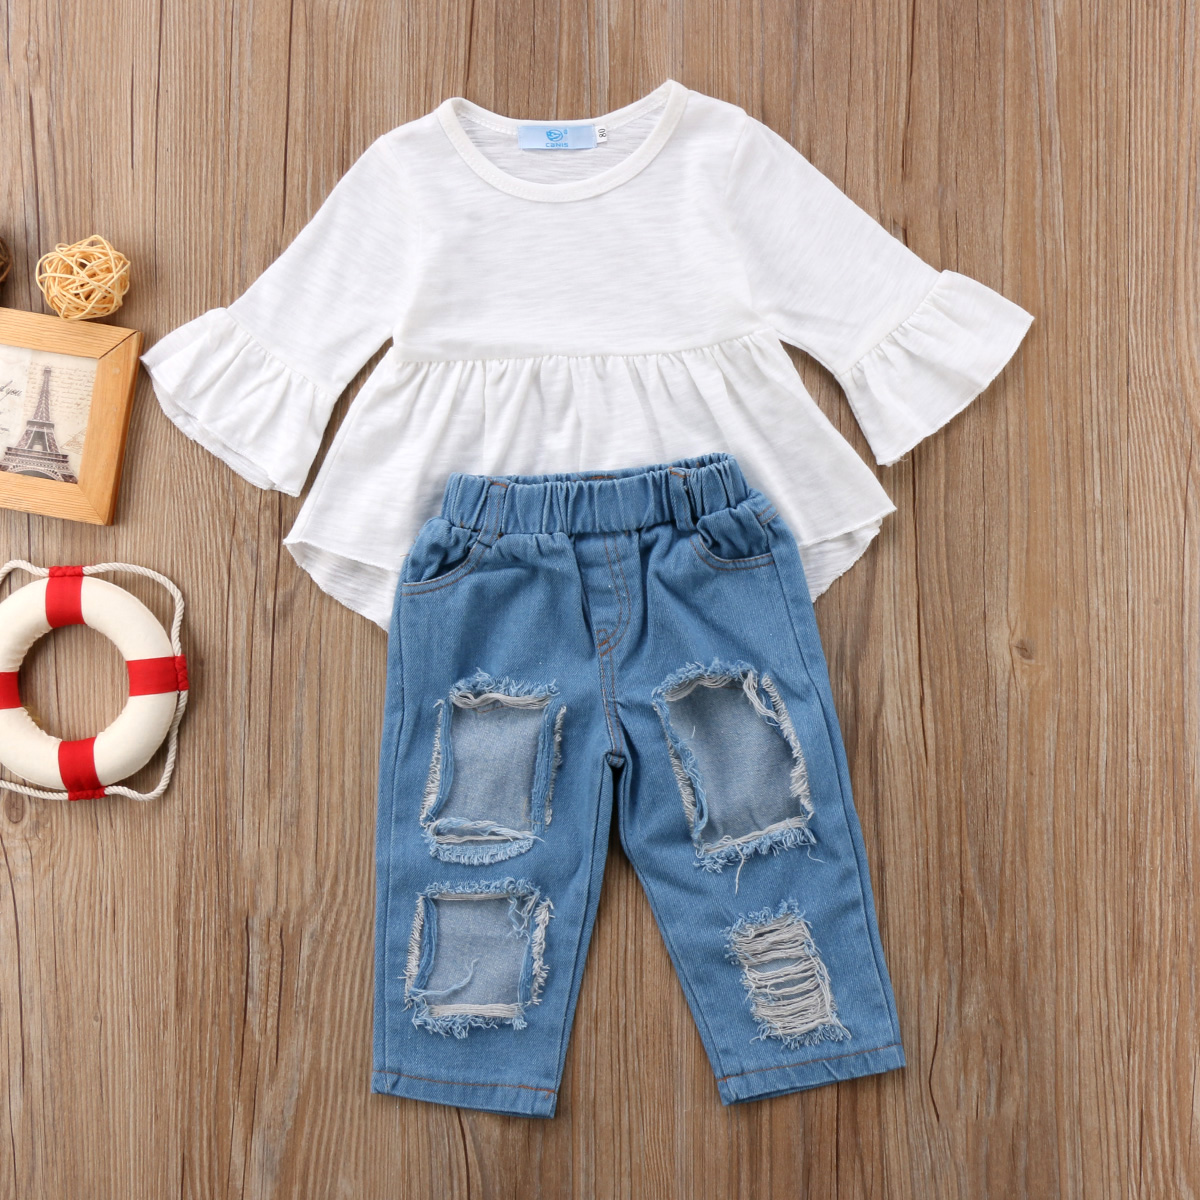 2Pcs Fashion Summer Toddler Kids Baby Girls Cotton Set Clothed Tunic Ruffle Tops Dress Ripped Denim Pants Jeans Clothes